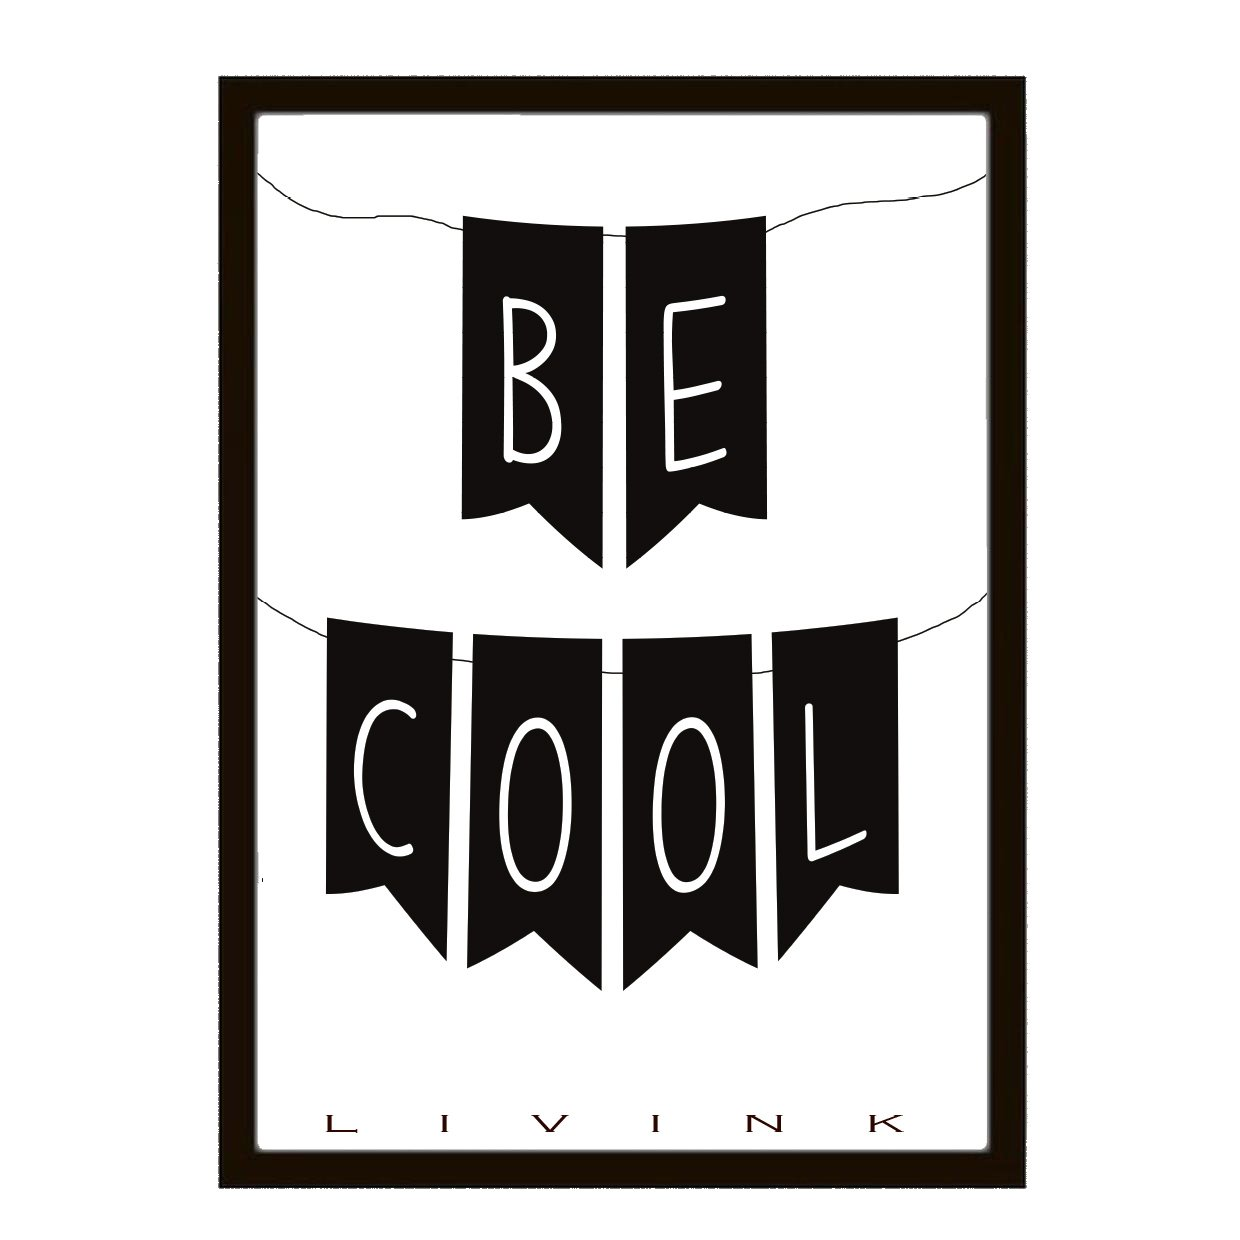 Be cool - 60% rabat